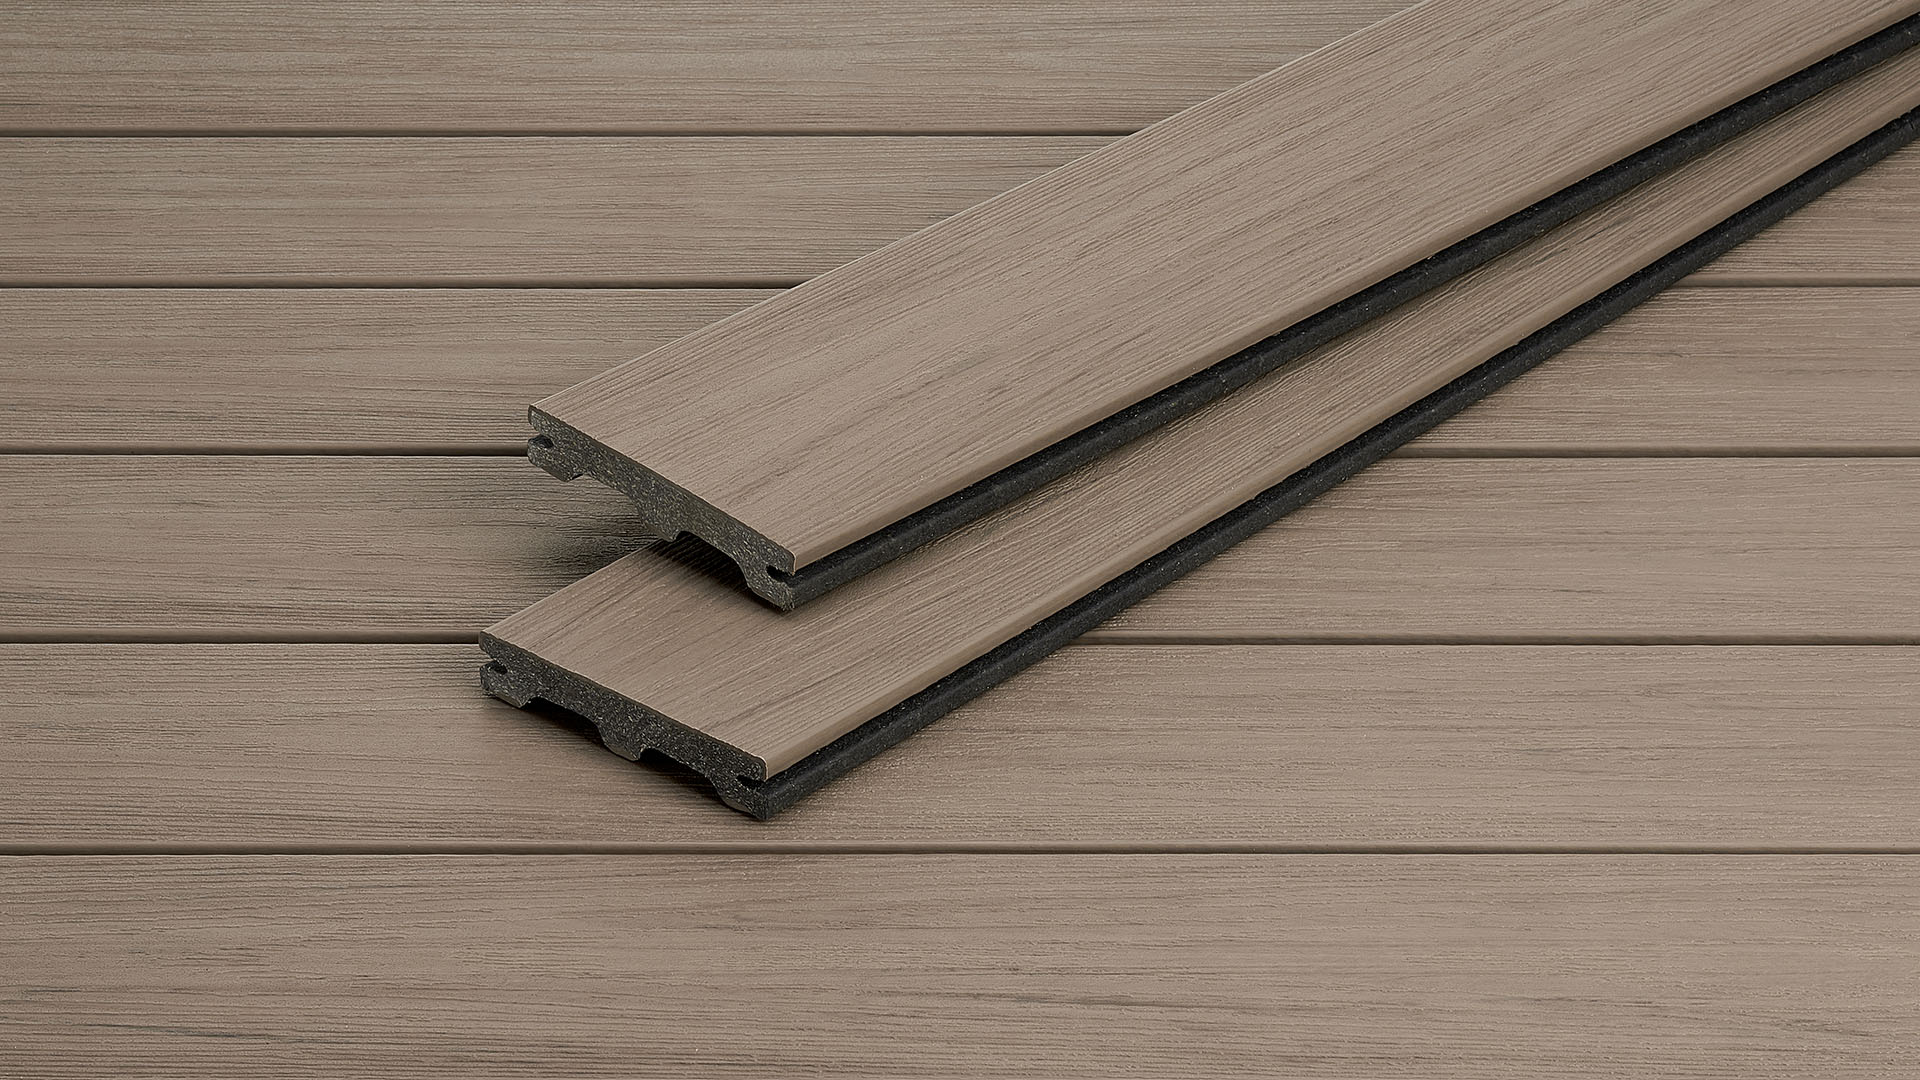 Compare decking boards - UPM ProFi Piazza